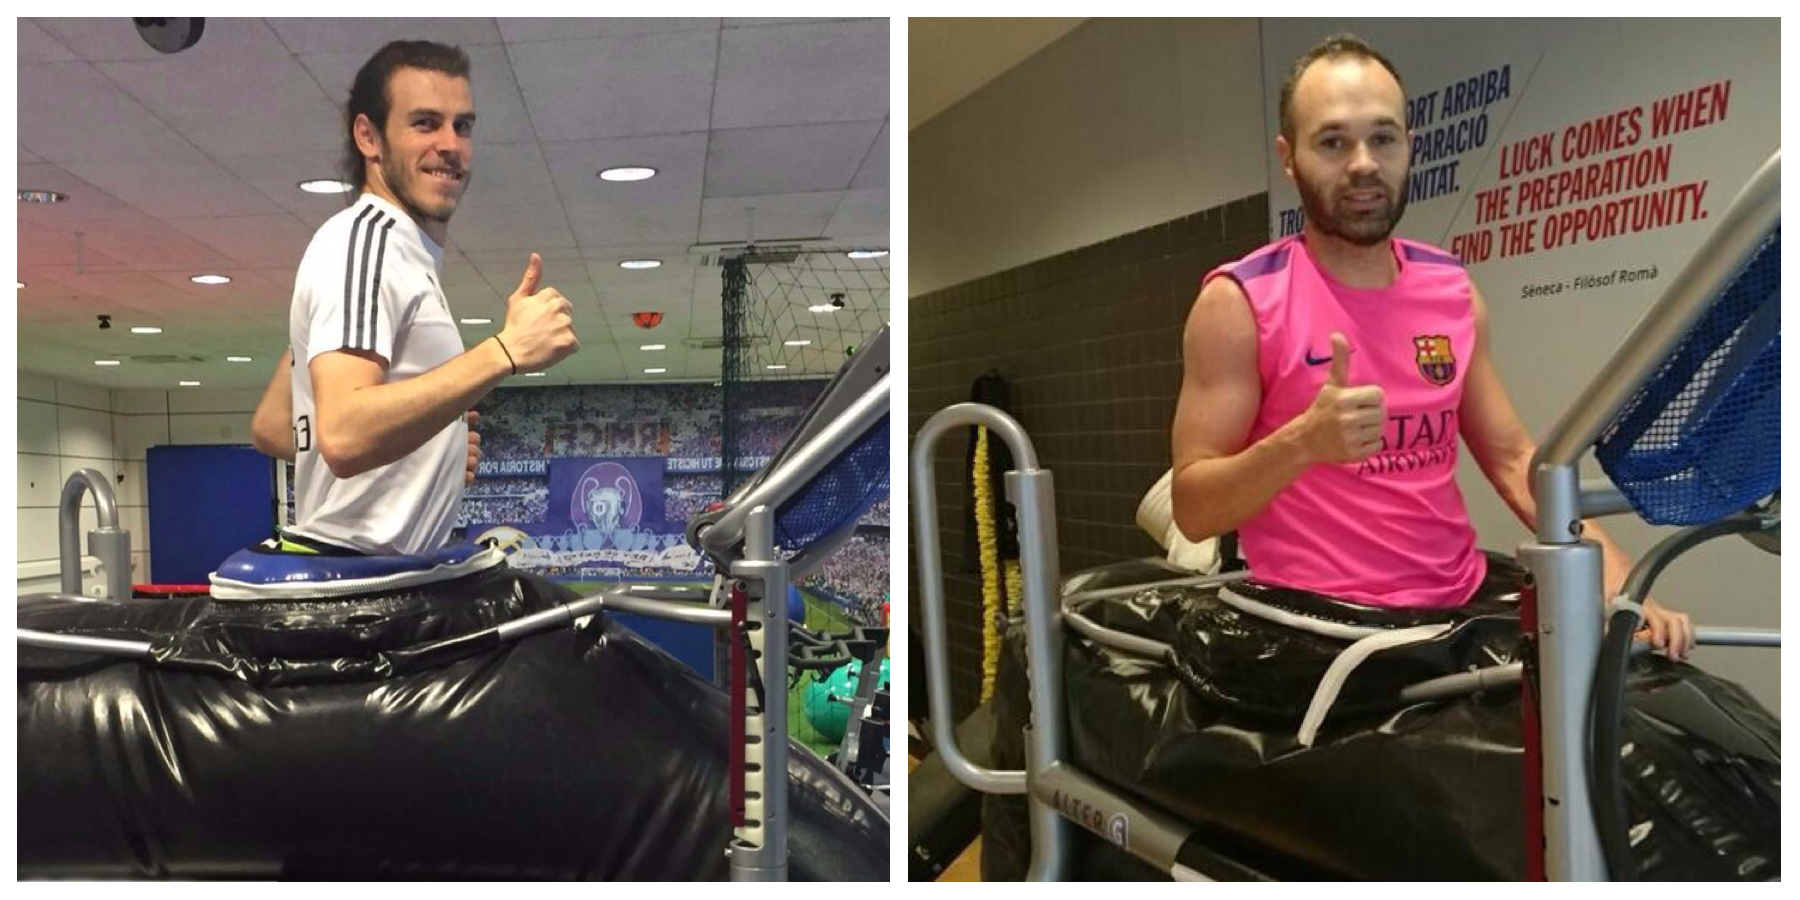 Gareth Bale and Andres Iniesta using Alter-G machines